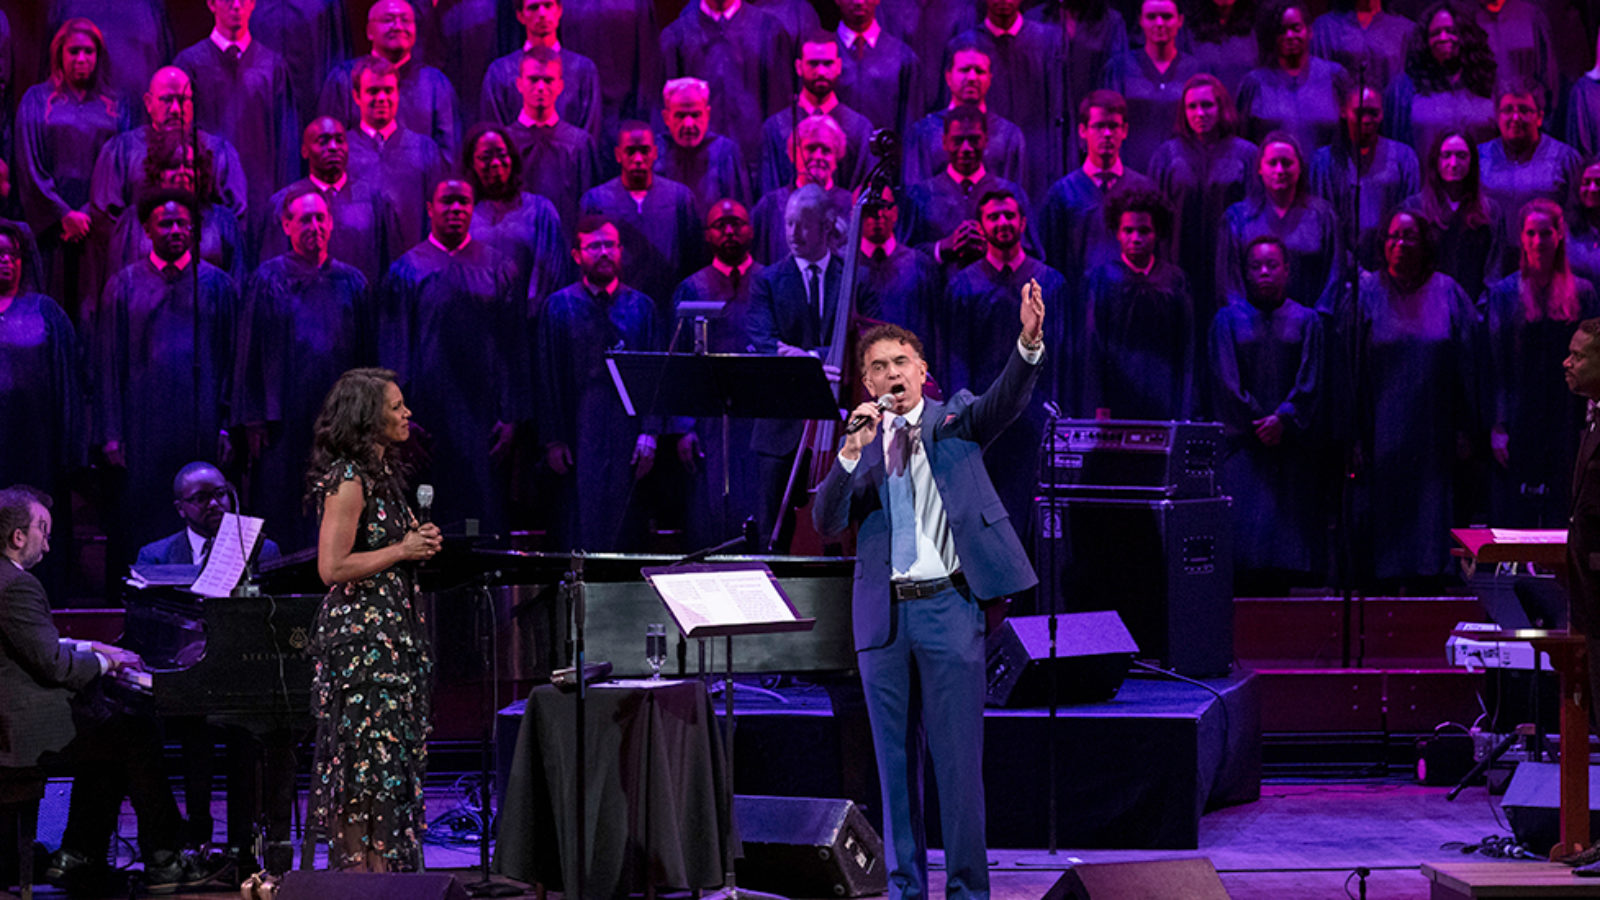 Audra McDonald looks on as Brian Stokes Mitchell sings with a choir singing on stage with him in the background.